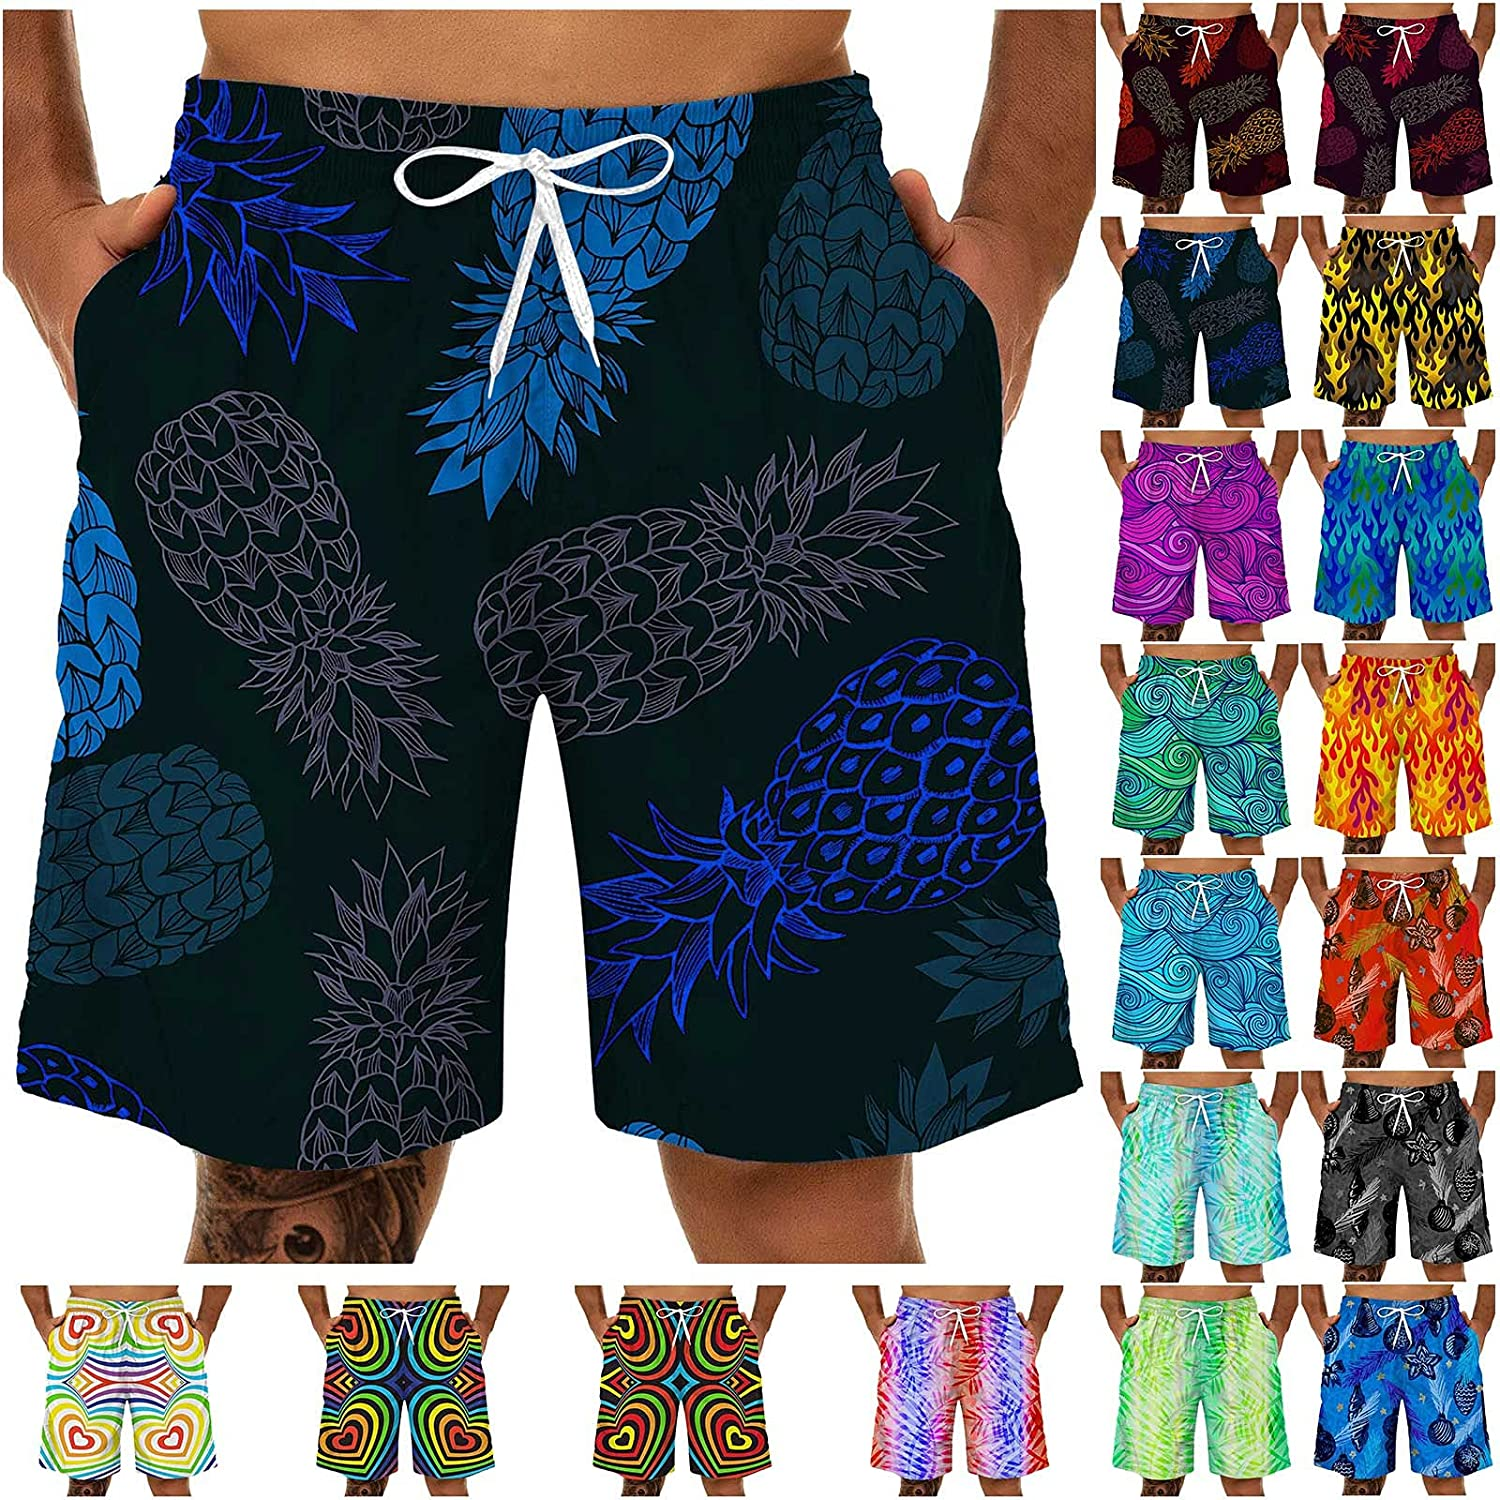 Mens Swim Trunks Quick Dry Board Shorts Fashion 3D Printed Funny Beach Shorts Bathing Suits with Pockets